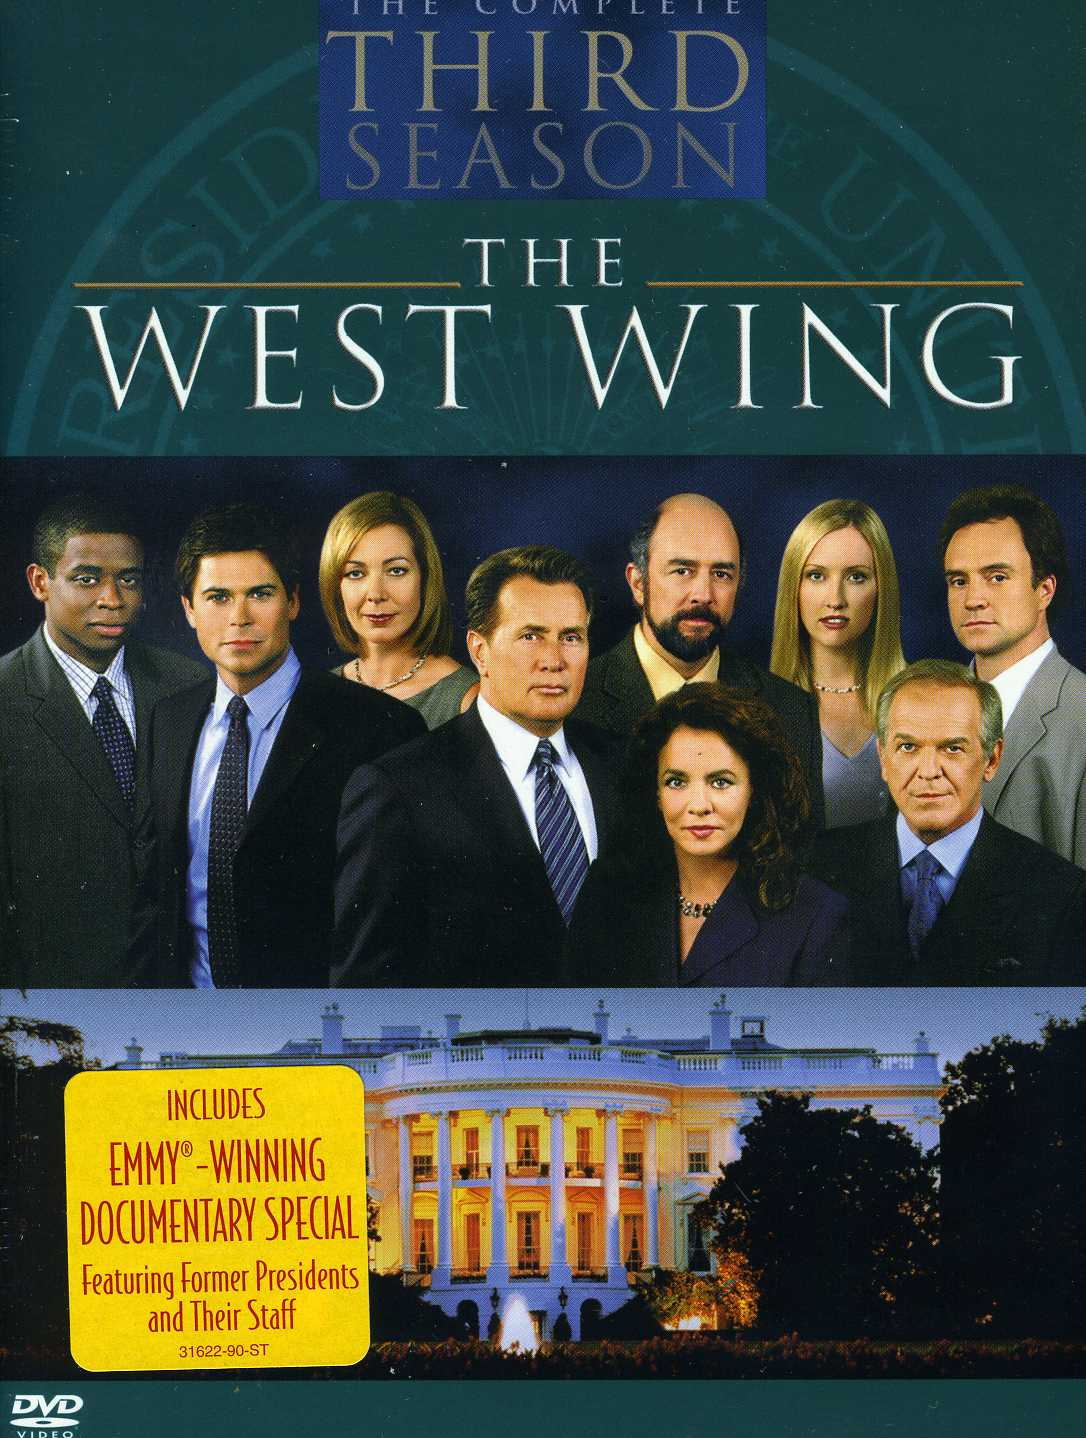 West Wing: The Complete Third Season (DVD)